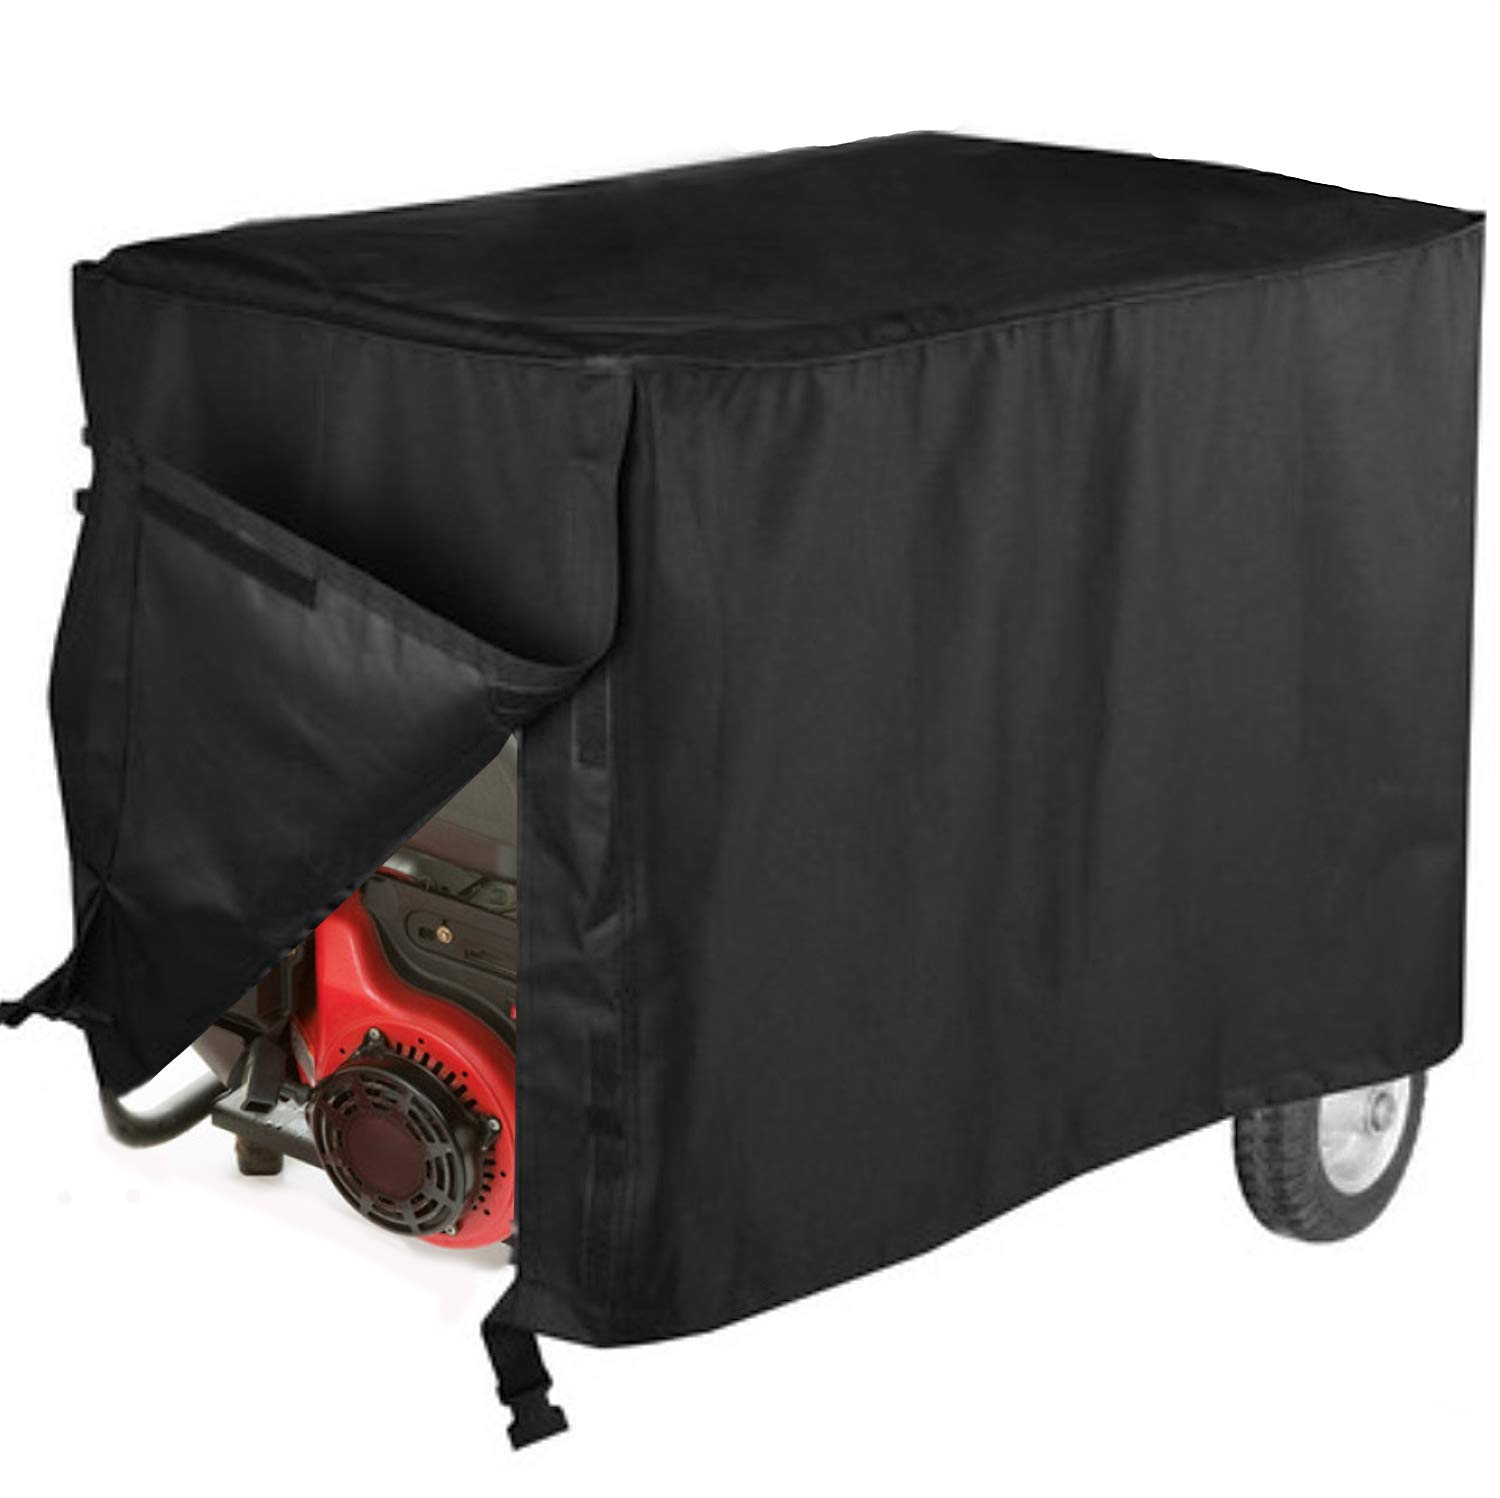 Yqbuy Universal Generator Waterproof Cover - 600D Heavy Duty Polyester Generator Cover for Most Generators, Black (32'' L x 24'' W x24 H)